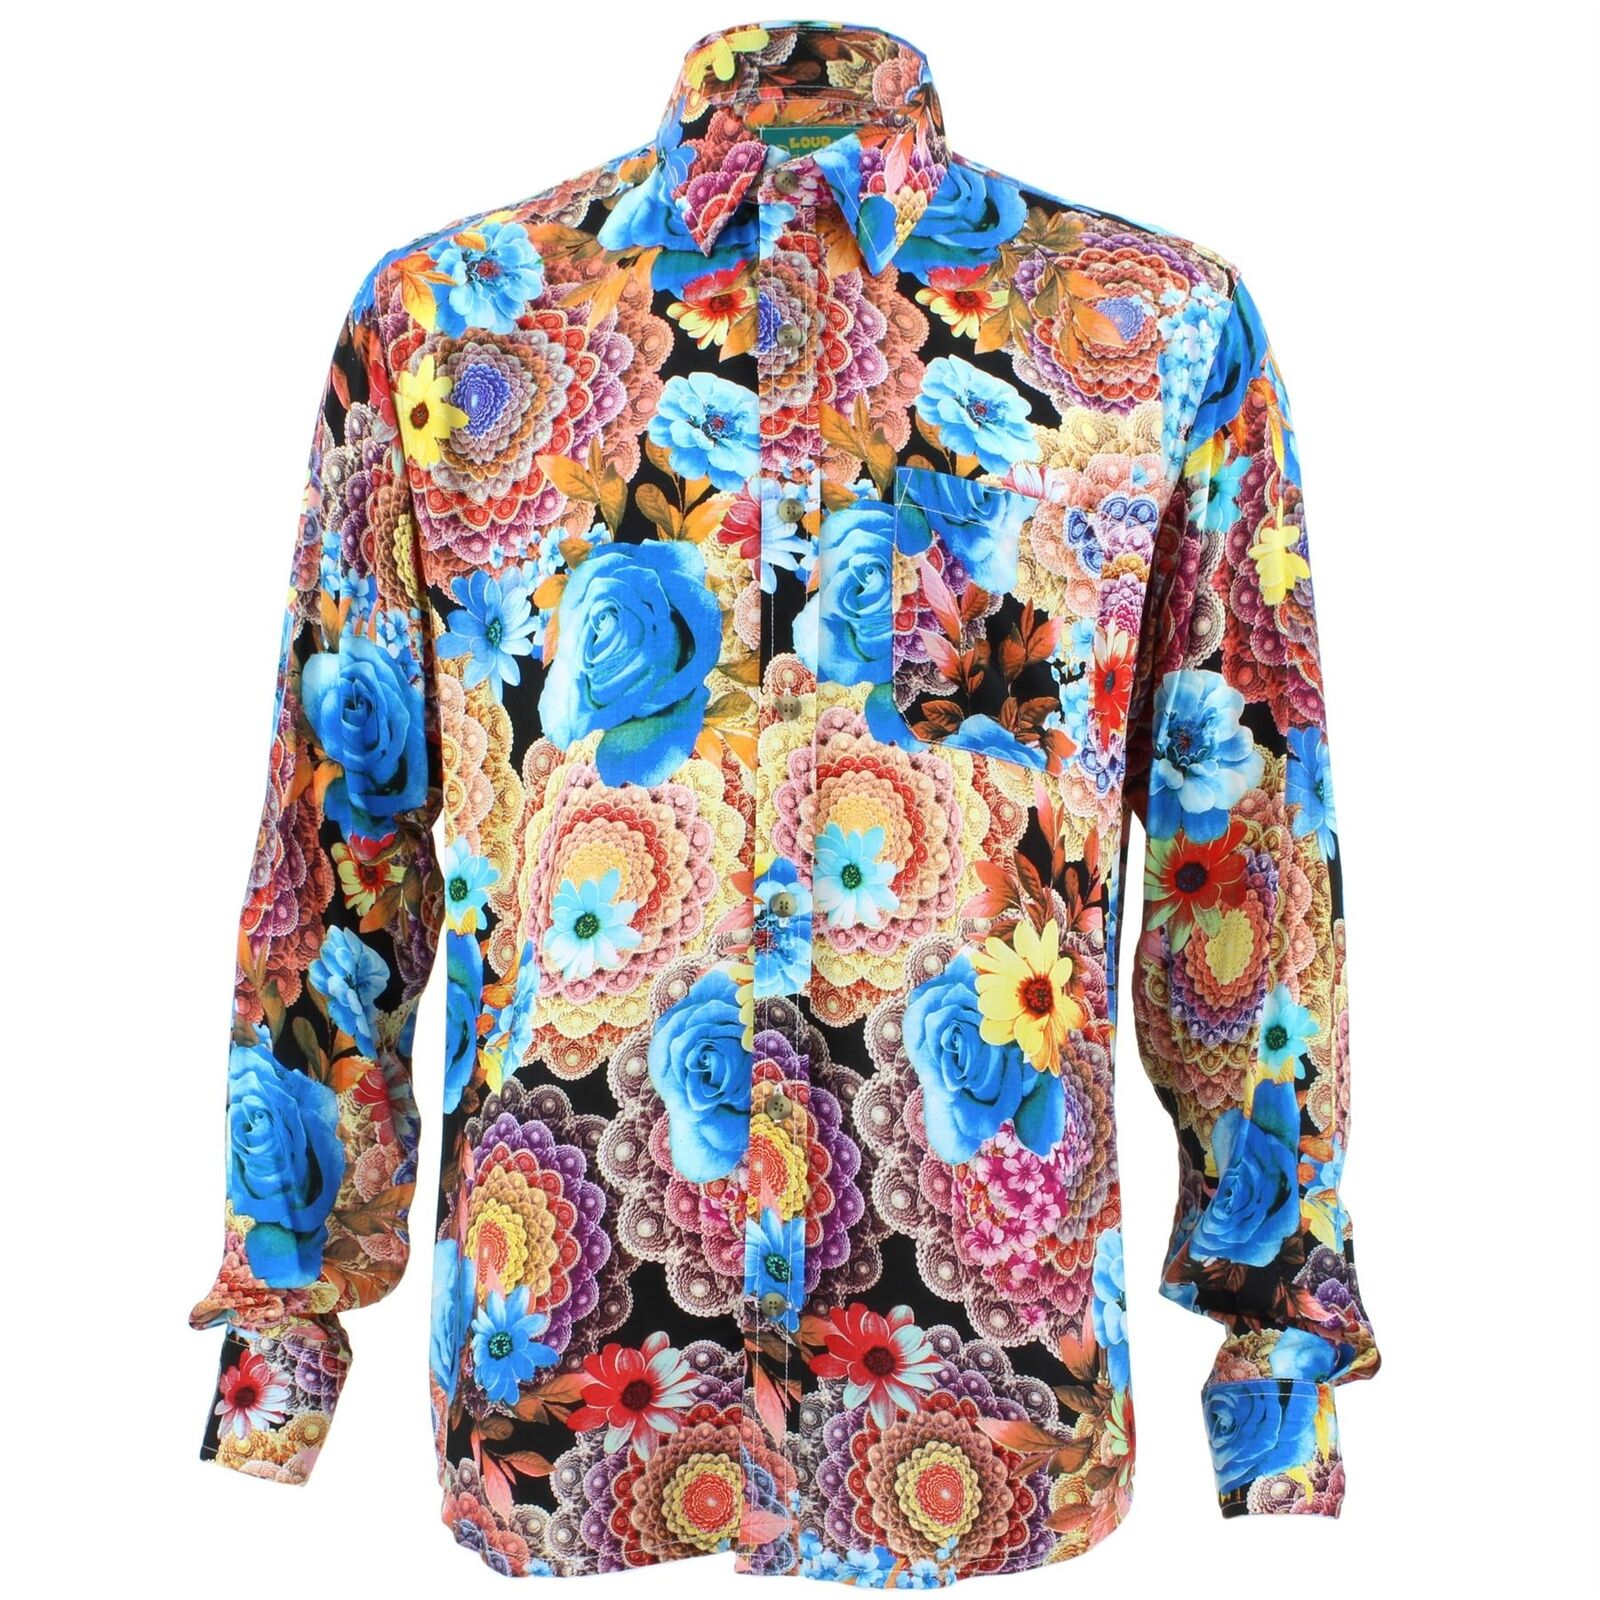 Men's Loud Shirt Retro Psychedelic Funky Party TAILORED FIT Bright Floral